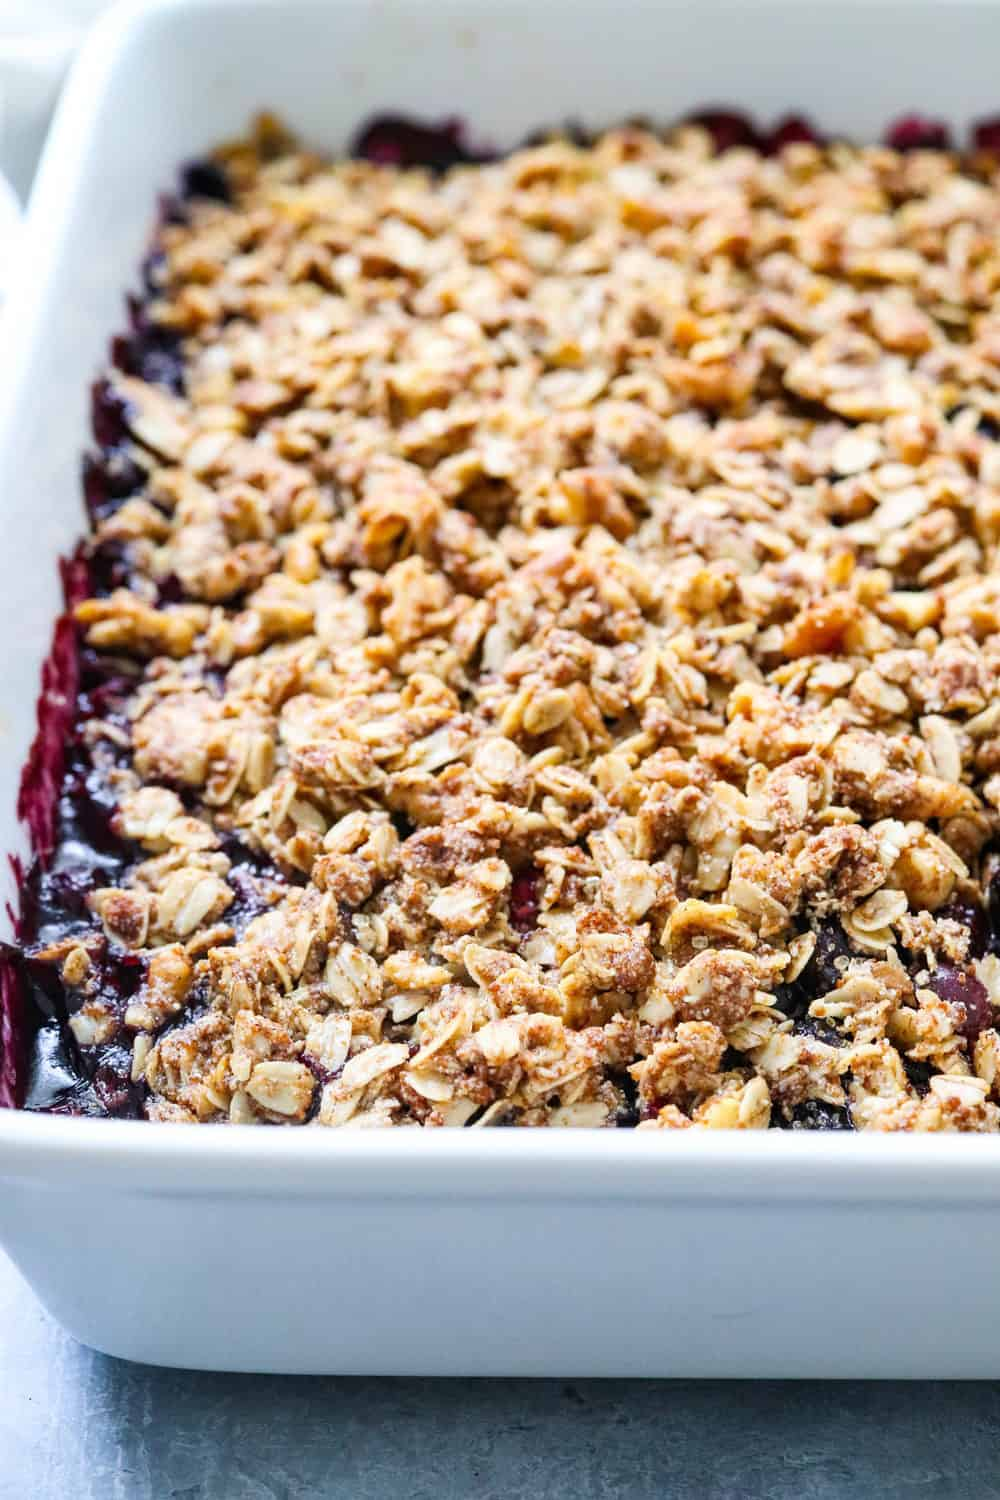 full white pan of baked crisp with oat crumble topping